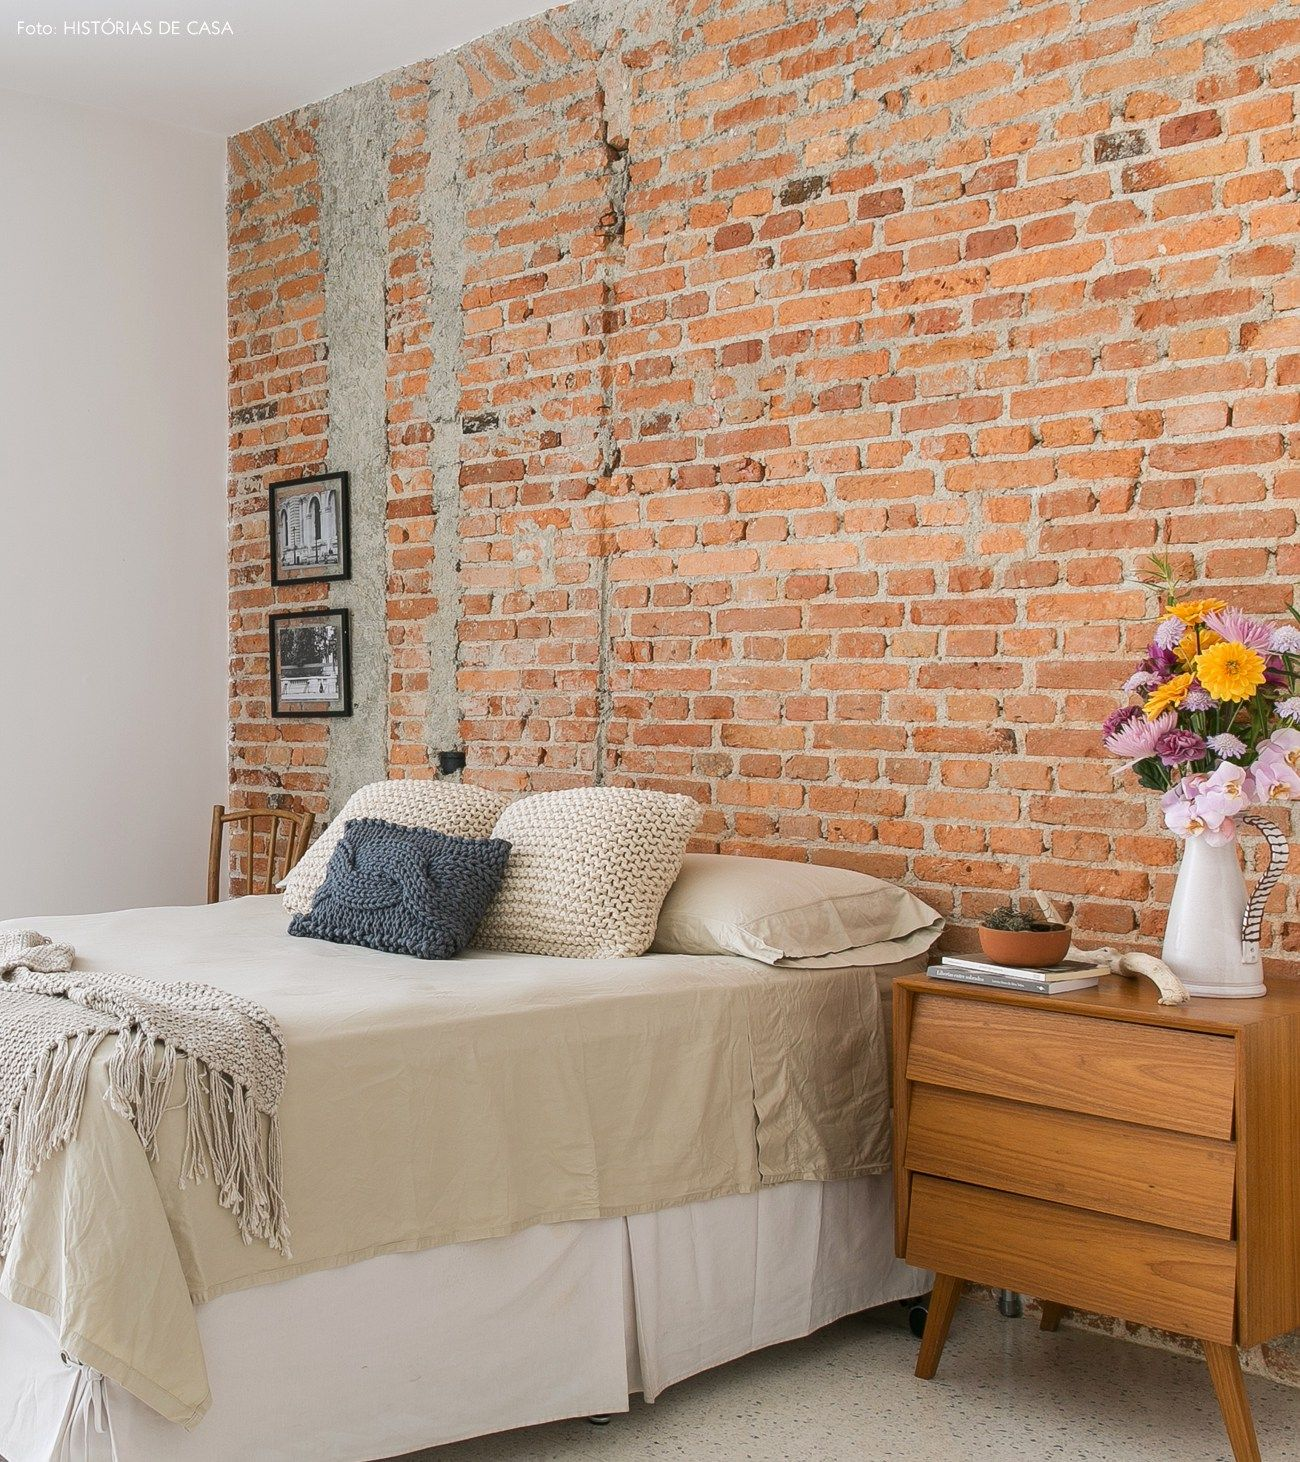 Exposed Brick Bedroom Design Sensual Bedroom Paint Colors Master Bedroom Accent Wall Bedroom Curtains Harry Corry: Pin By Ludmila An On хранение вещей